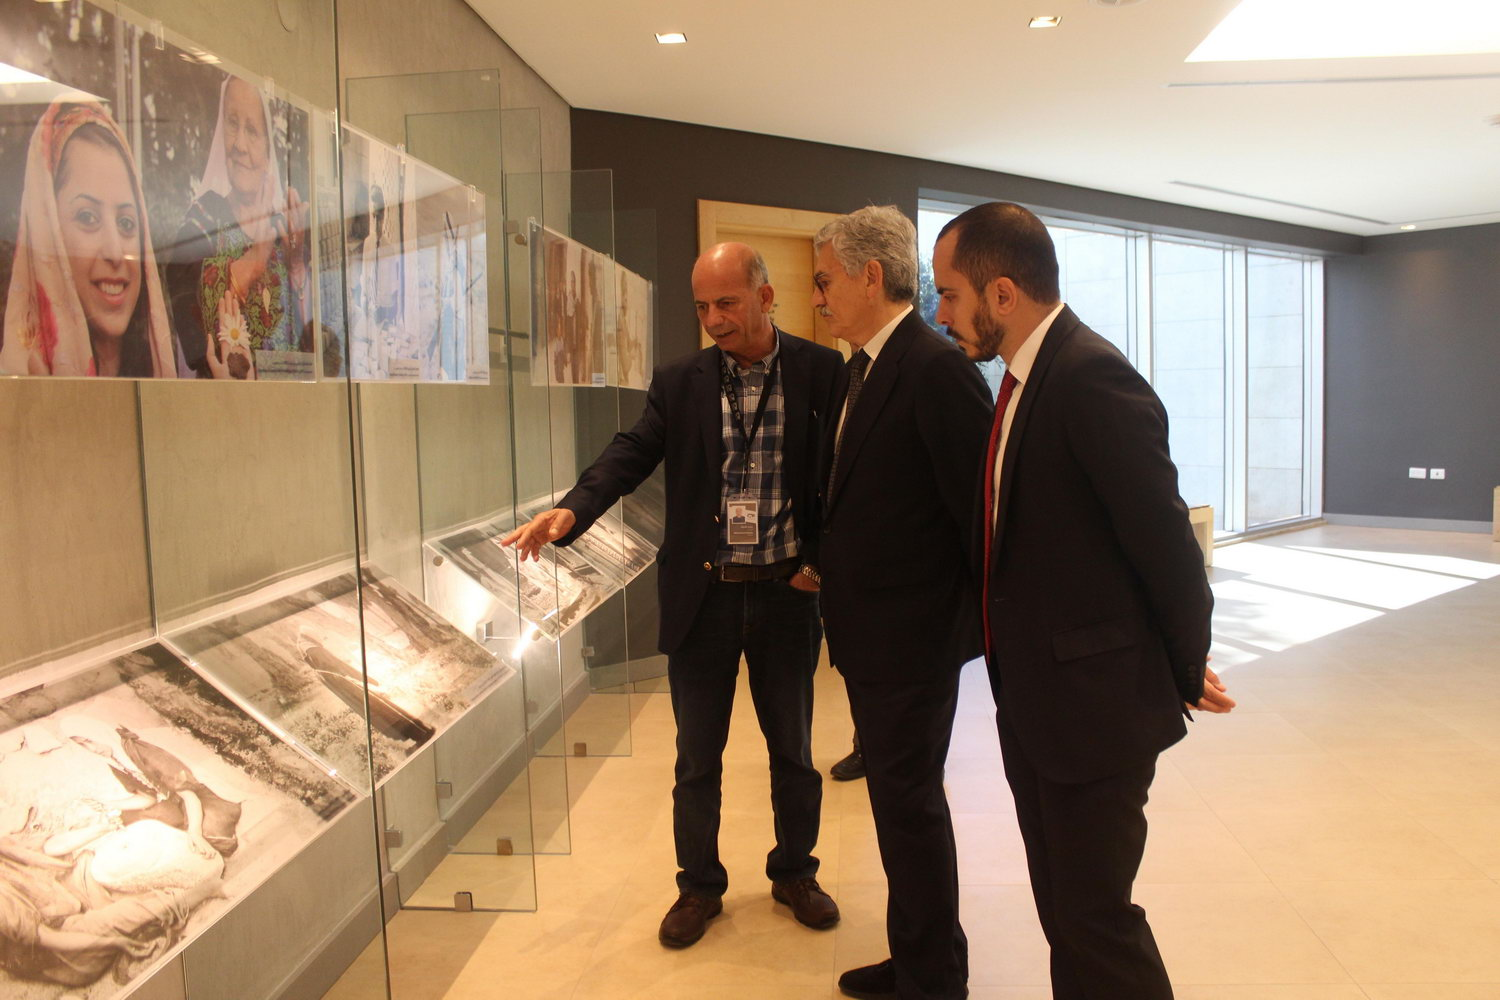 Former Prime Minister of Italy Massimo D'Alema Visits Yasser Arafat Museum